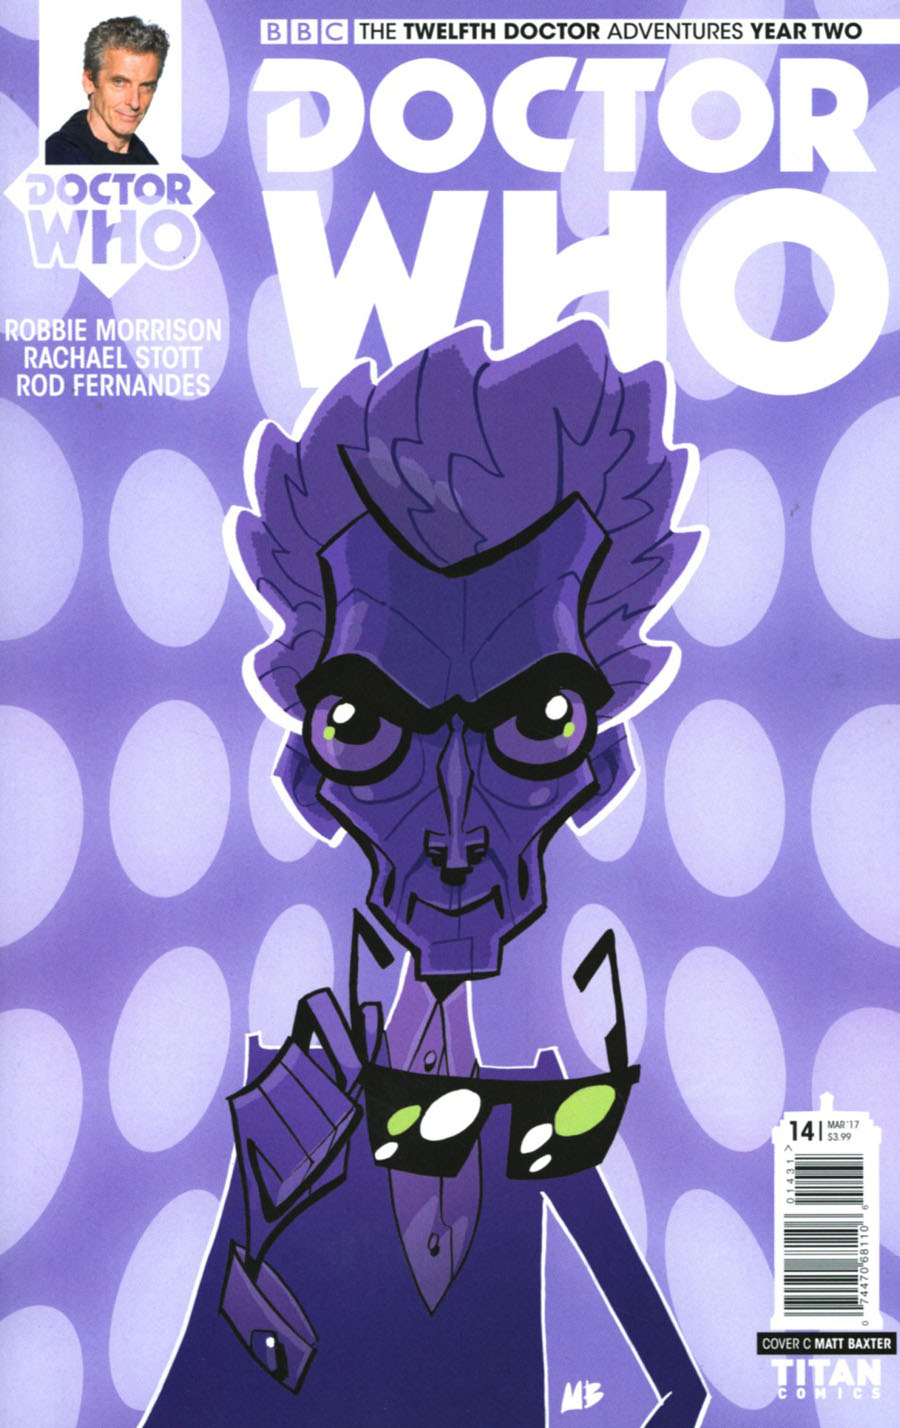 Doctor Who 12th Doctor Year Two #14 Cover C Variant Matt Baxter Cover